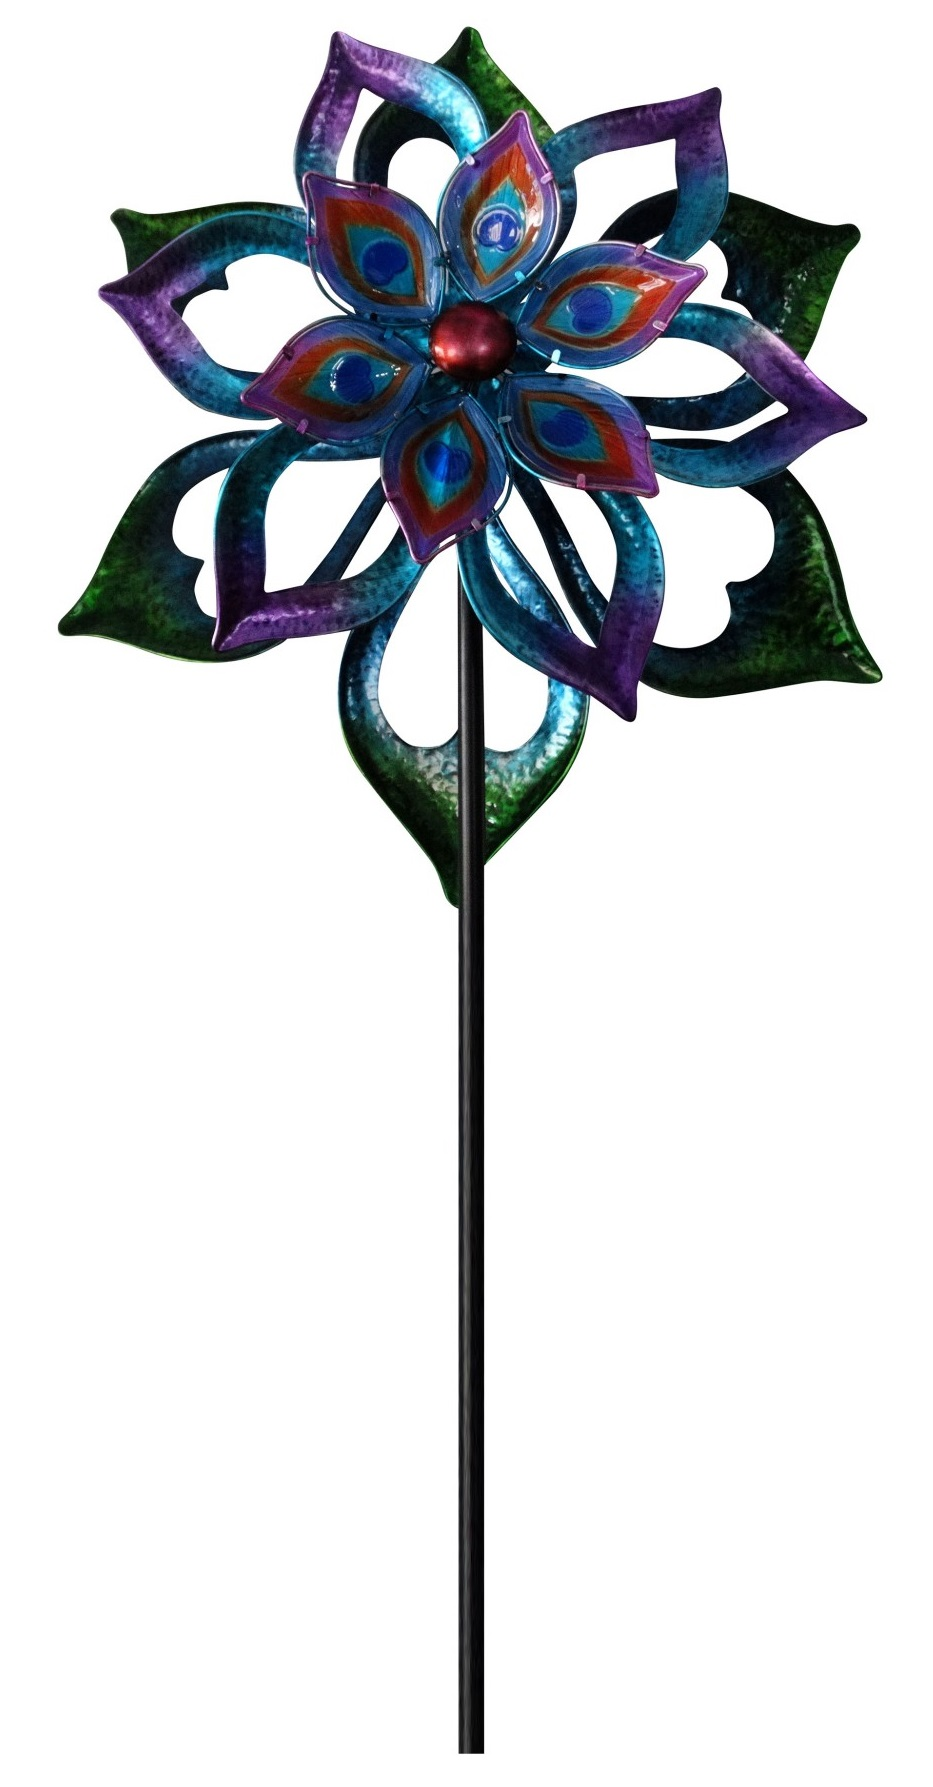 Double-Sided Flower Spinning Garden Stake by Benzara